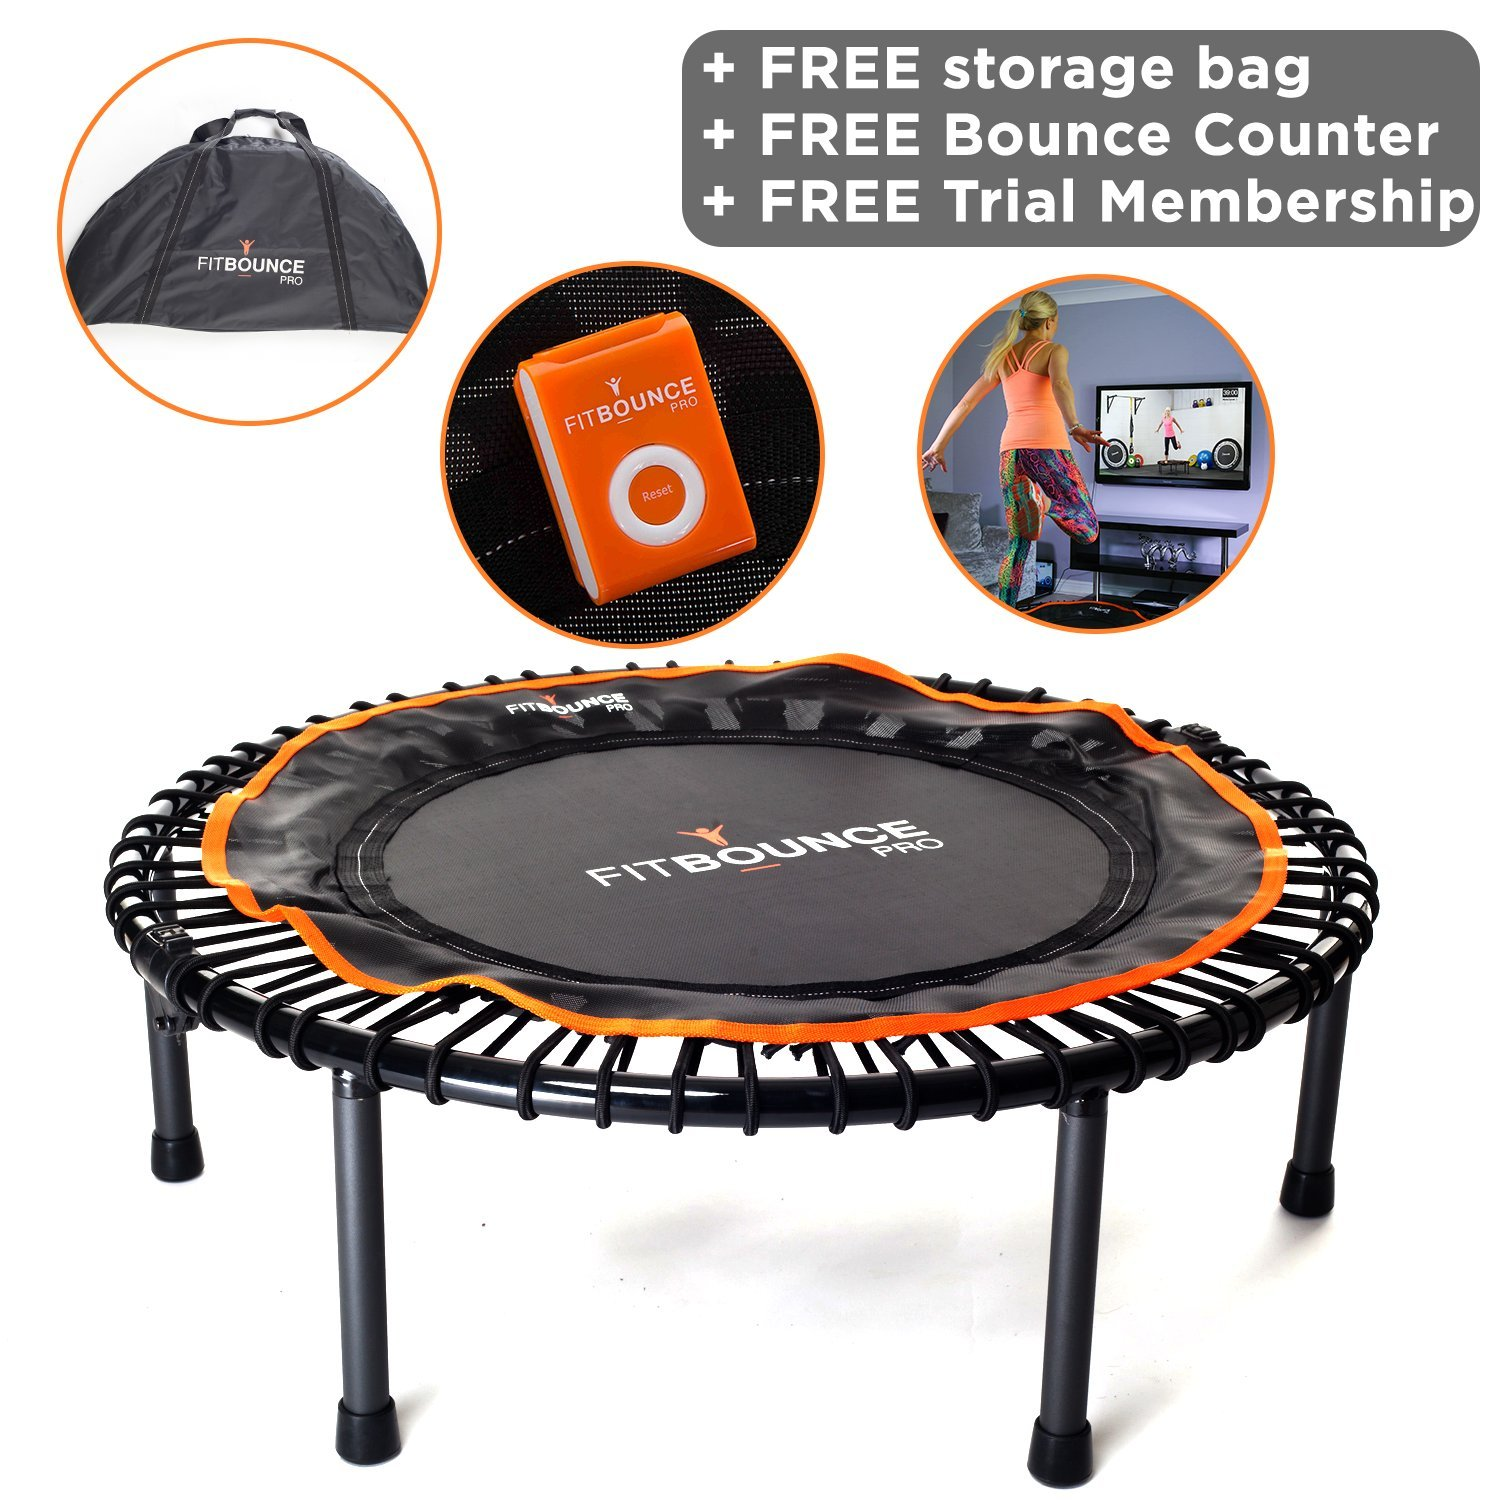 FIT BOUNCE PRO II - Top Seller - Half Foldable Very Quiet Beautifully Engineered Bungee Sprung Mini Trampoline Rebounder for Adults and Kids, DVD, Storage Bag & Bounce counter! Free Video Membership! by MXL MaXimus Life